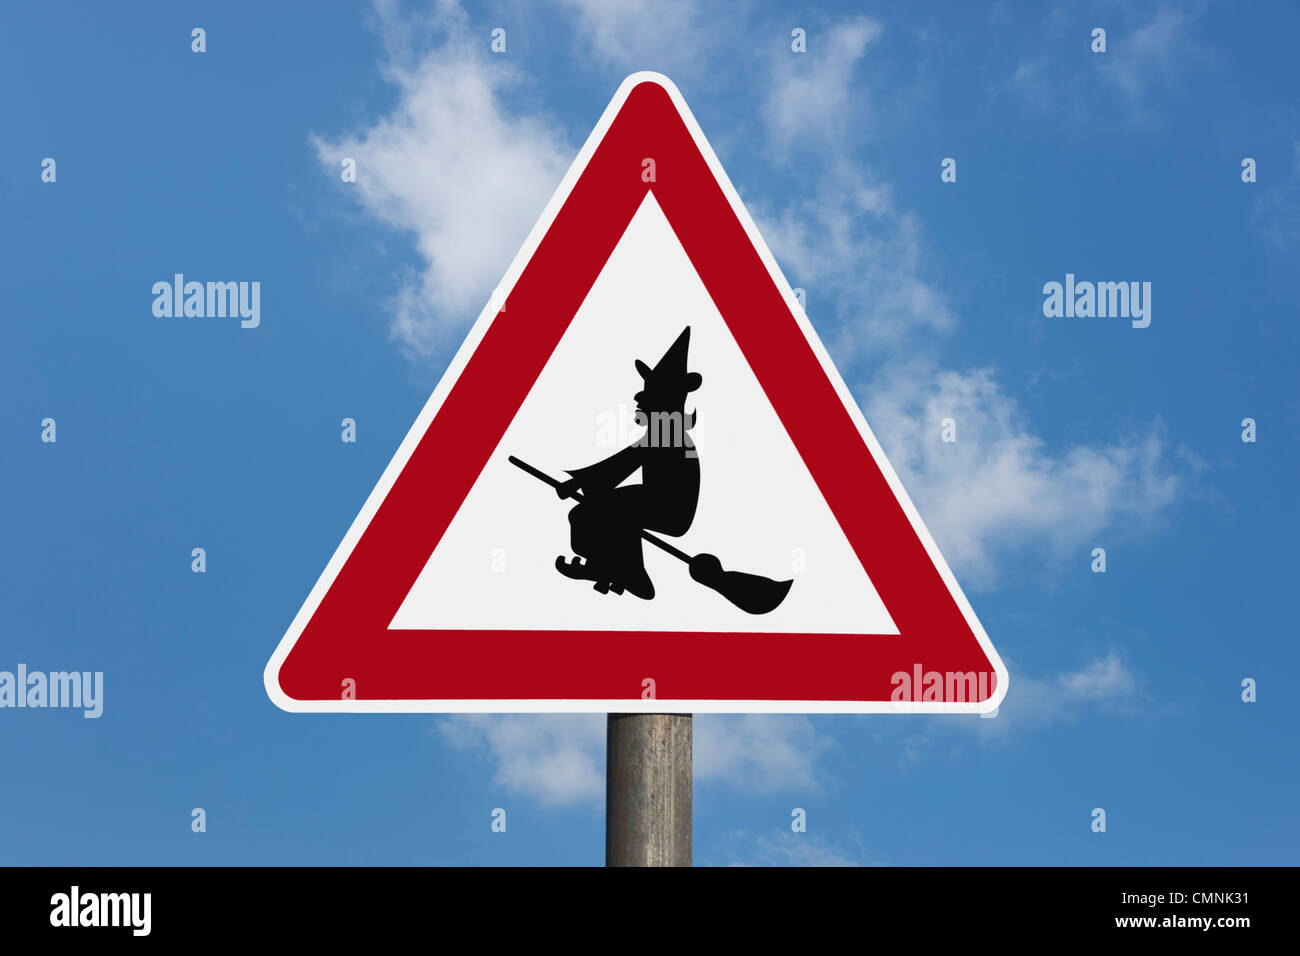 Detail photo of a danger sign with a witch on a broom in the middle, background sky. Stock Photo